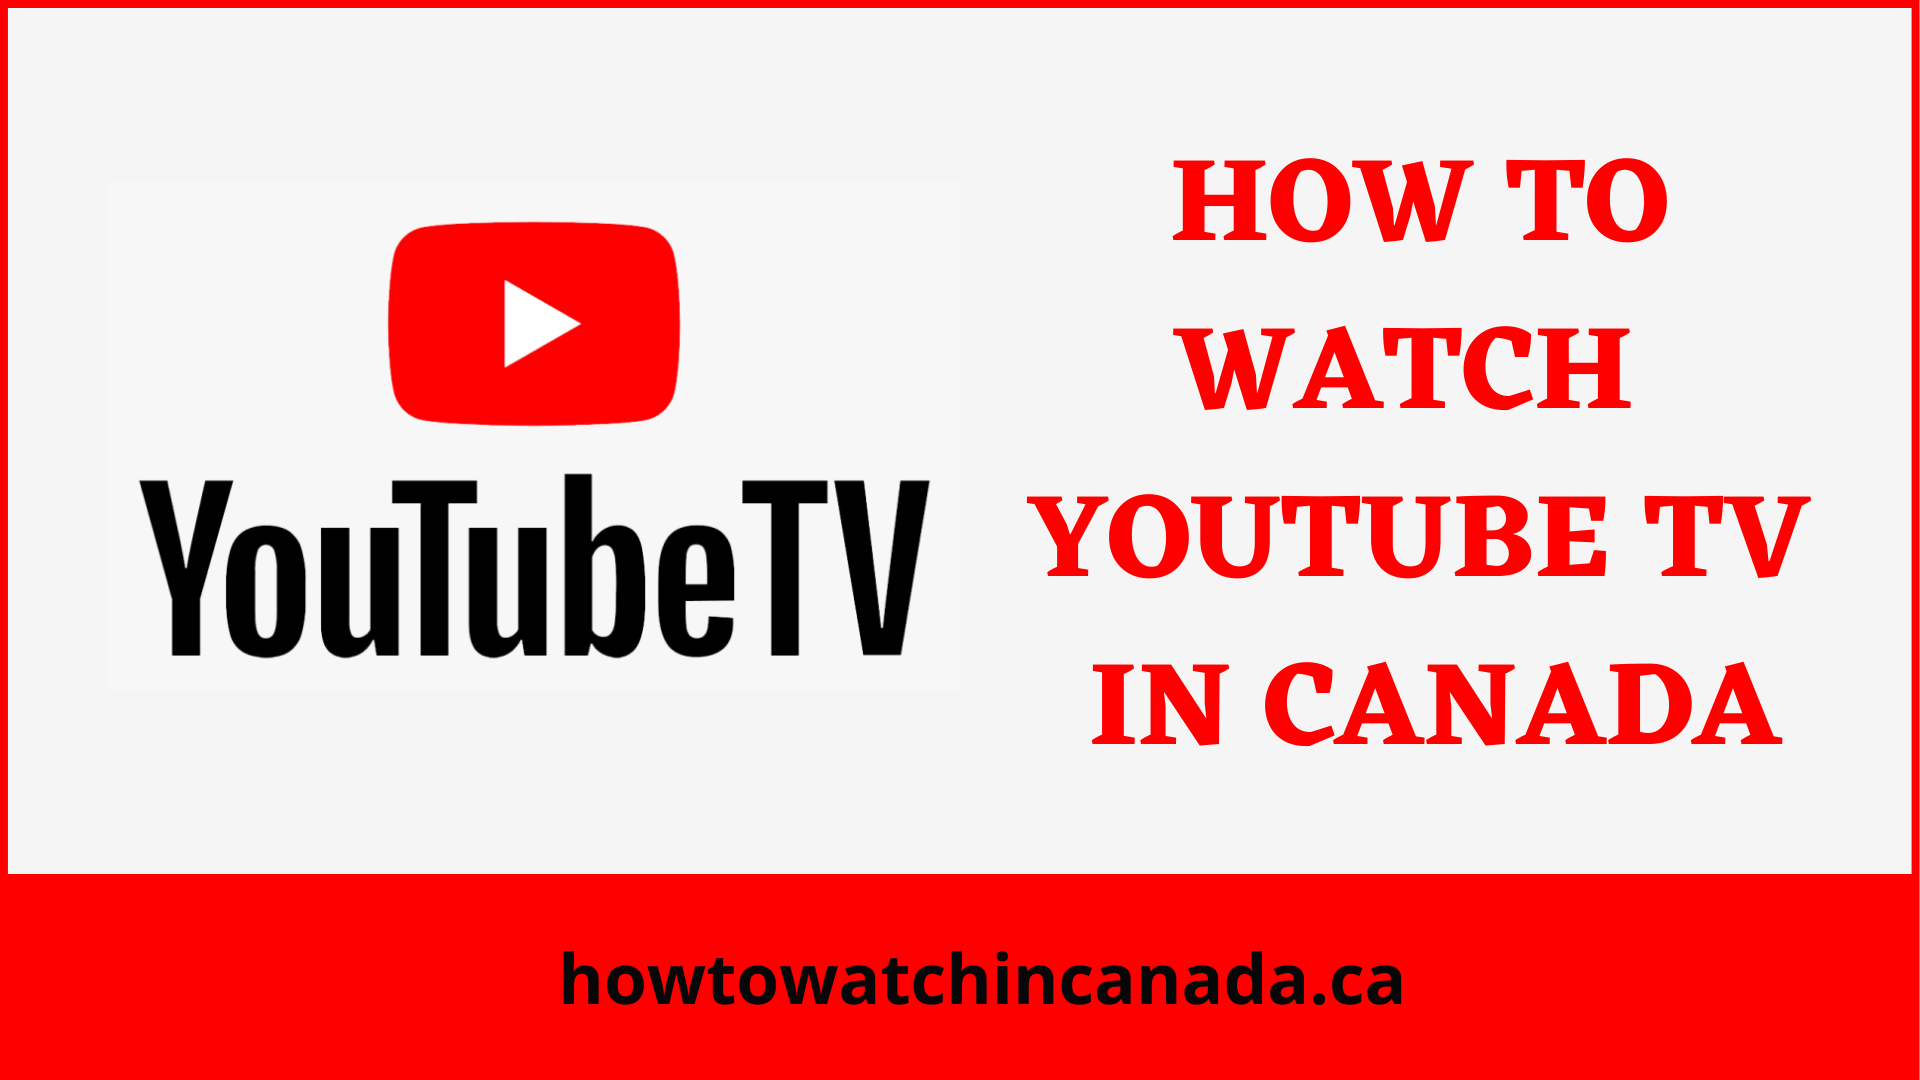 utube-tv-how-to-watch-in-canada